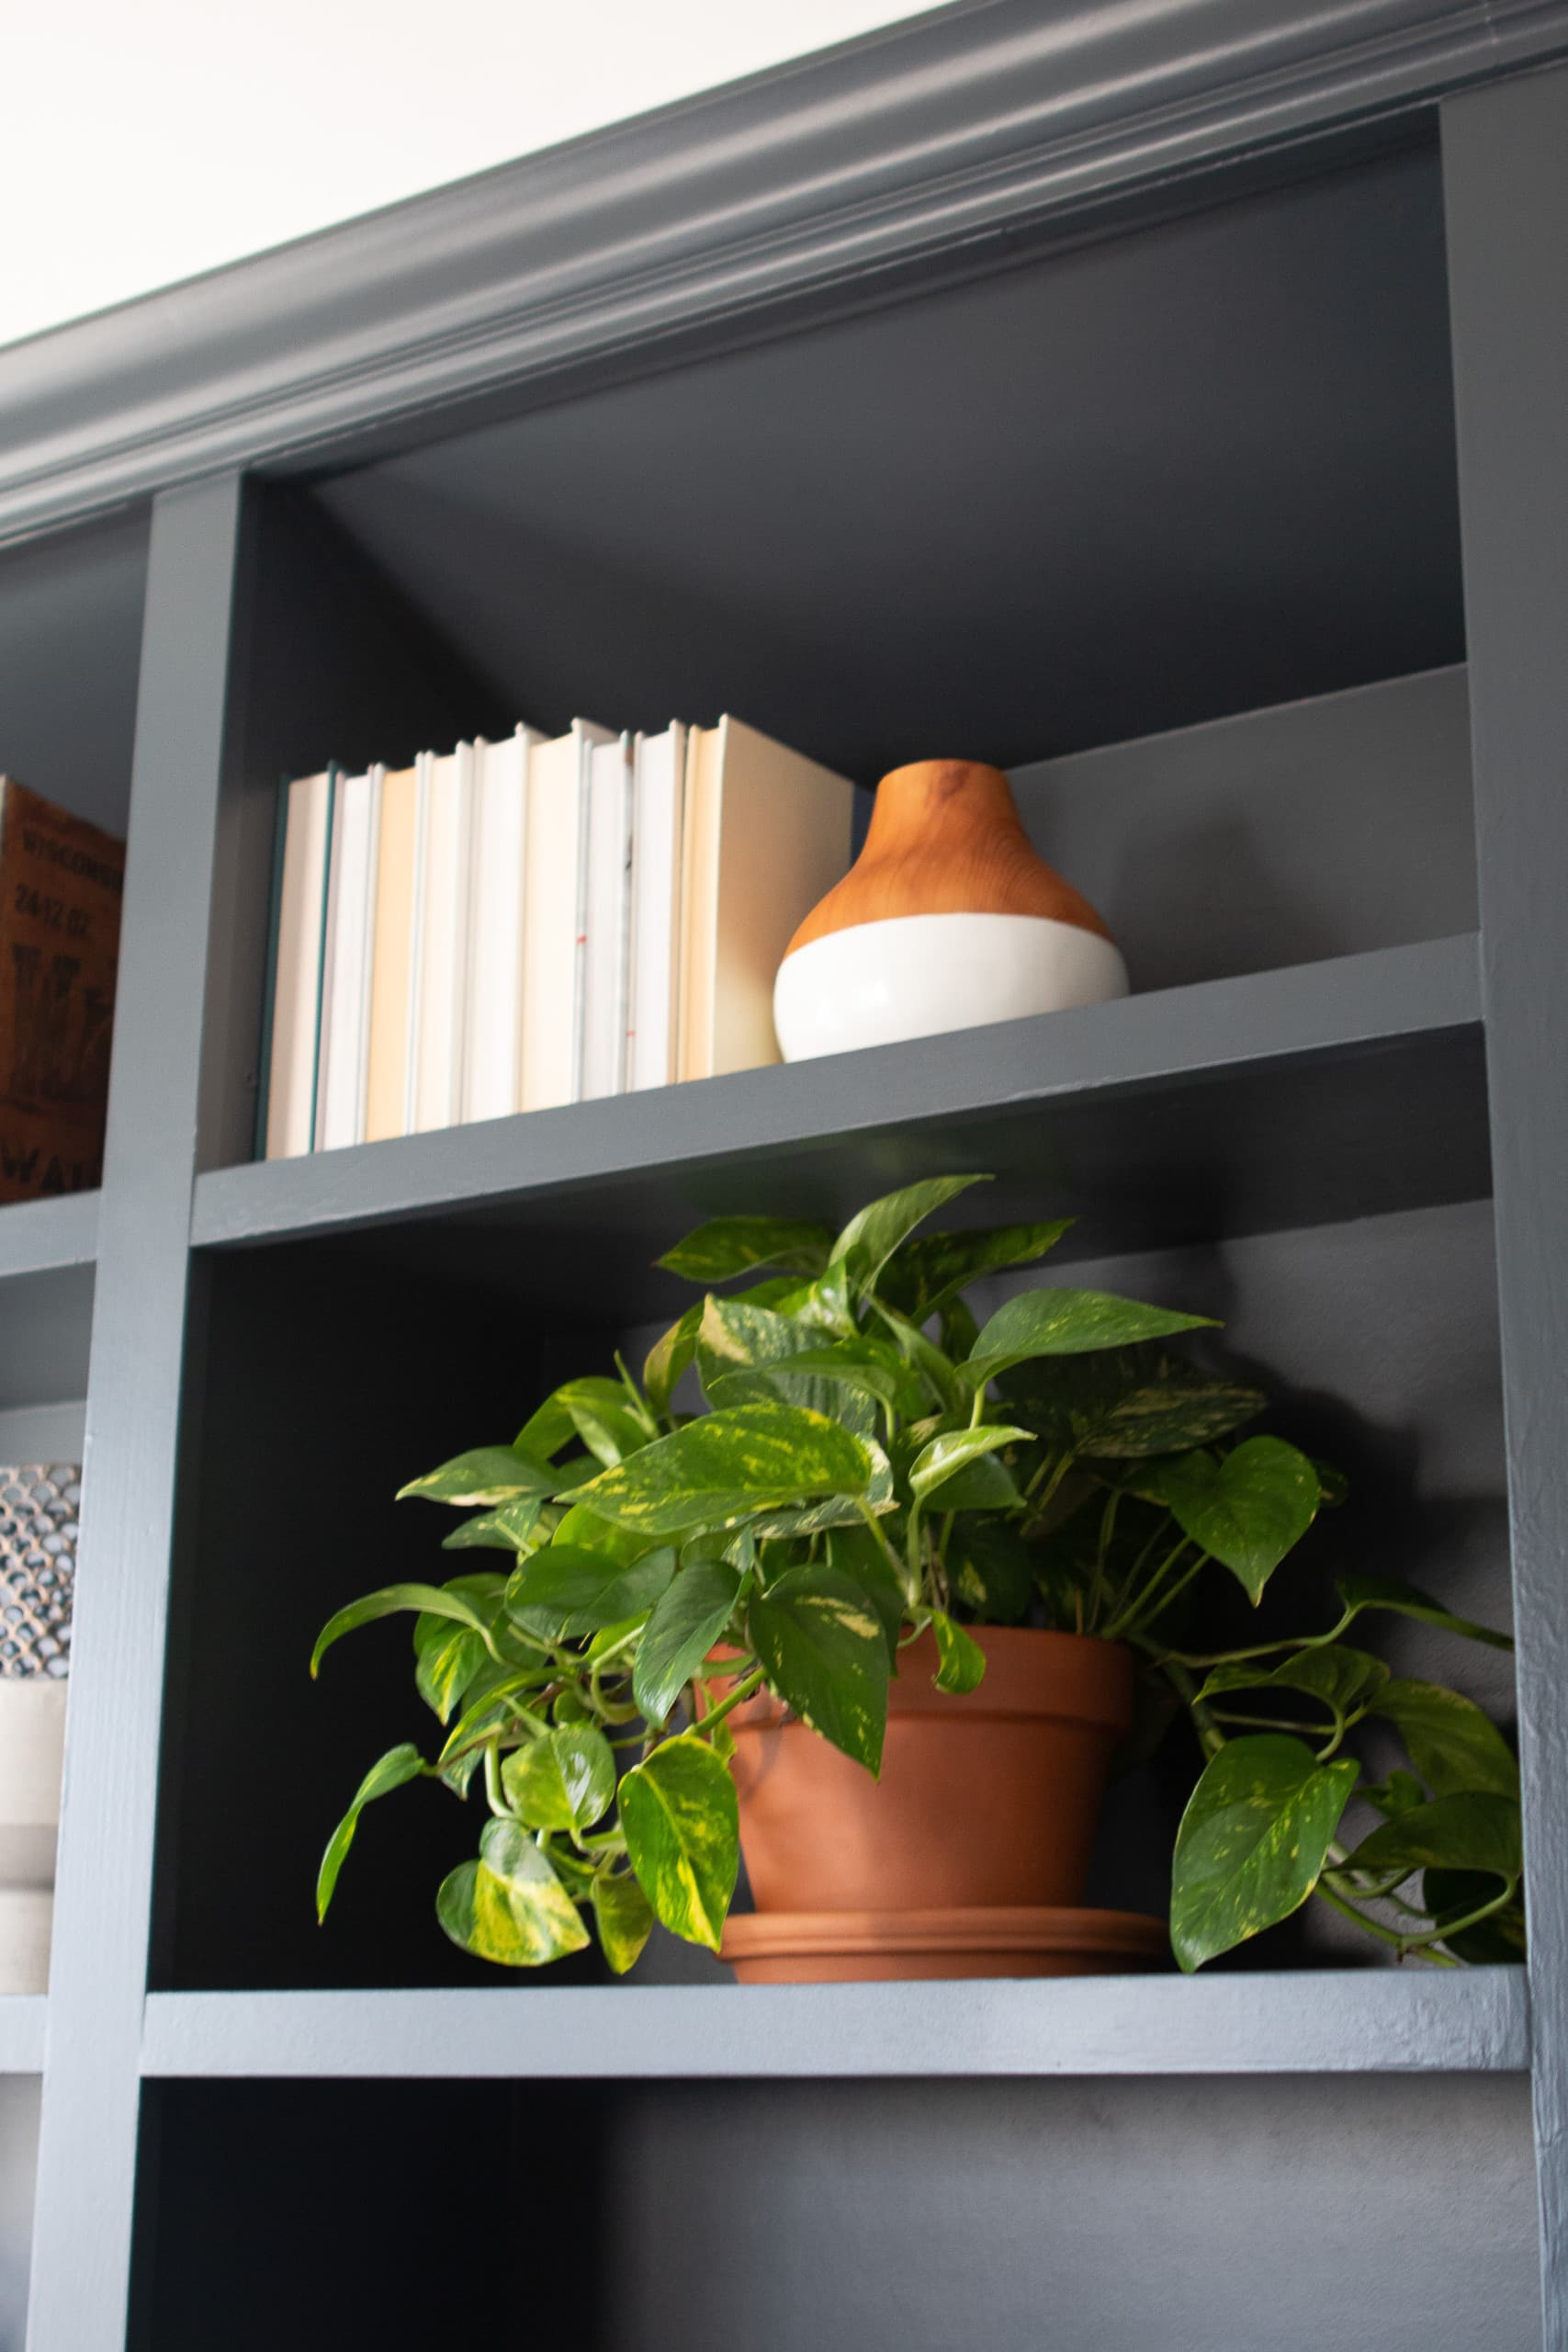 Books and plants on shelves